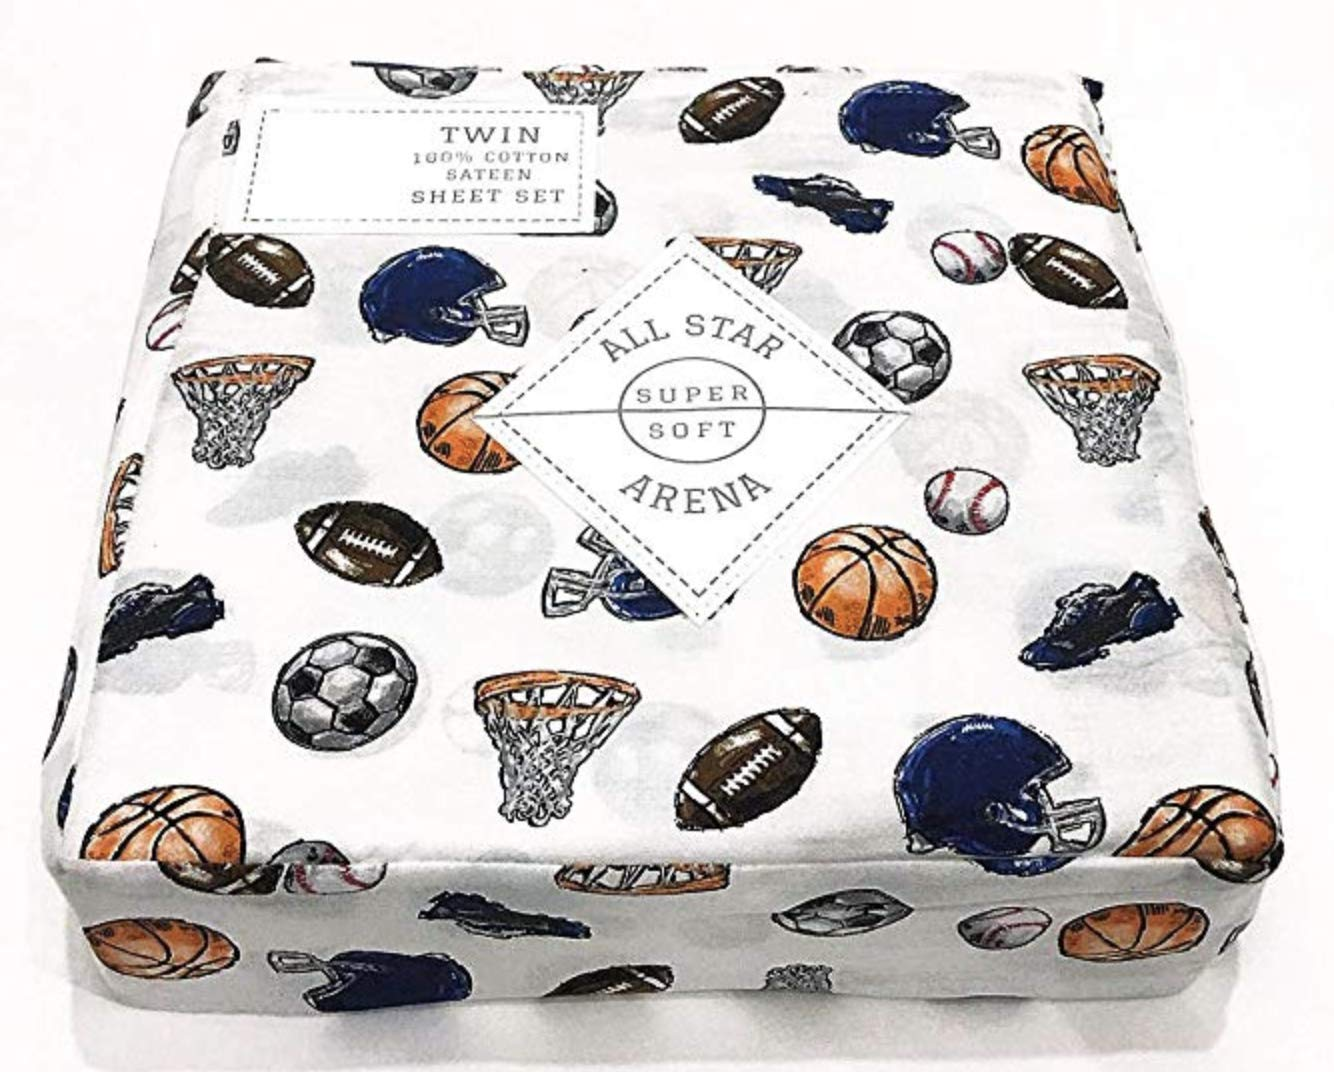 All Star Arena Boys Sports Themed Sheet Set Cotton Basketball, Soccer, Football, Baseball (Full) by All Star Arena